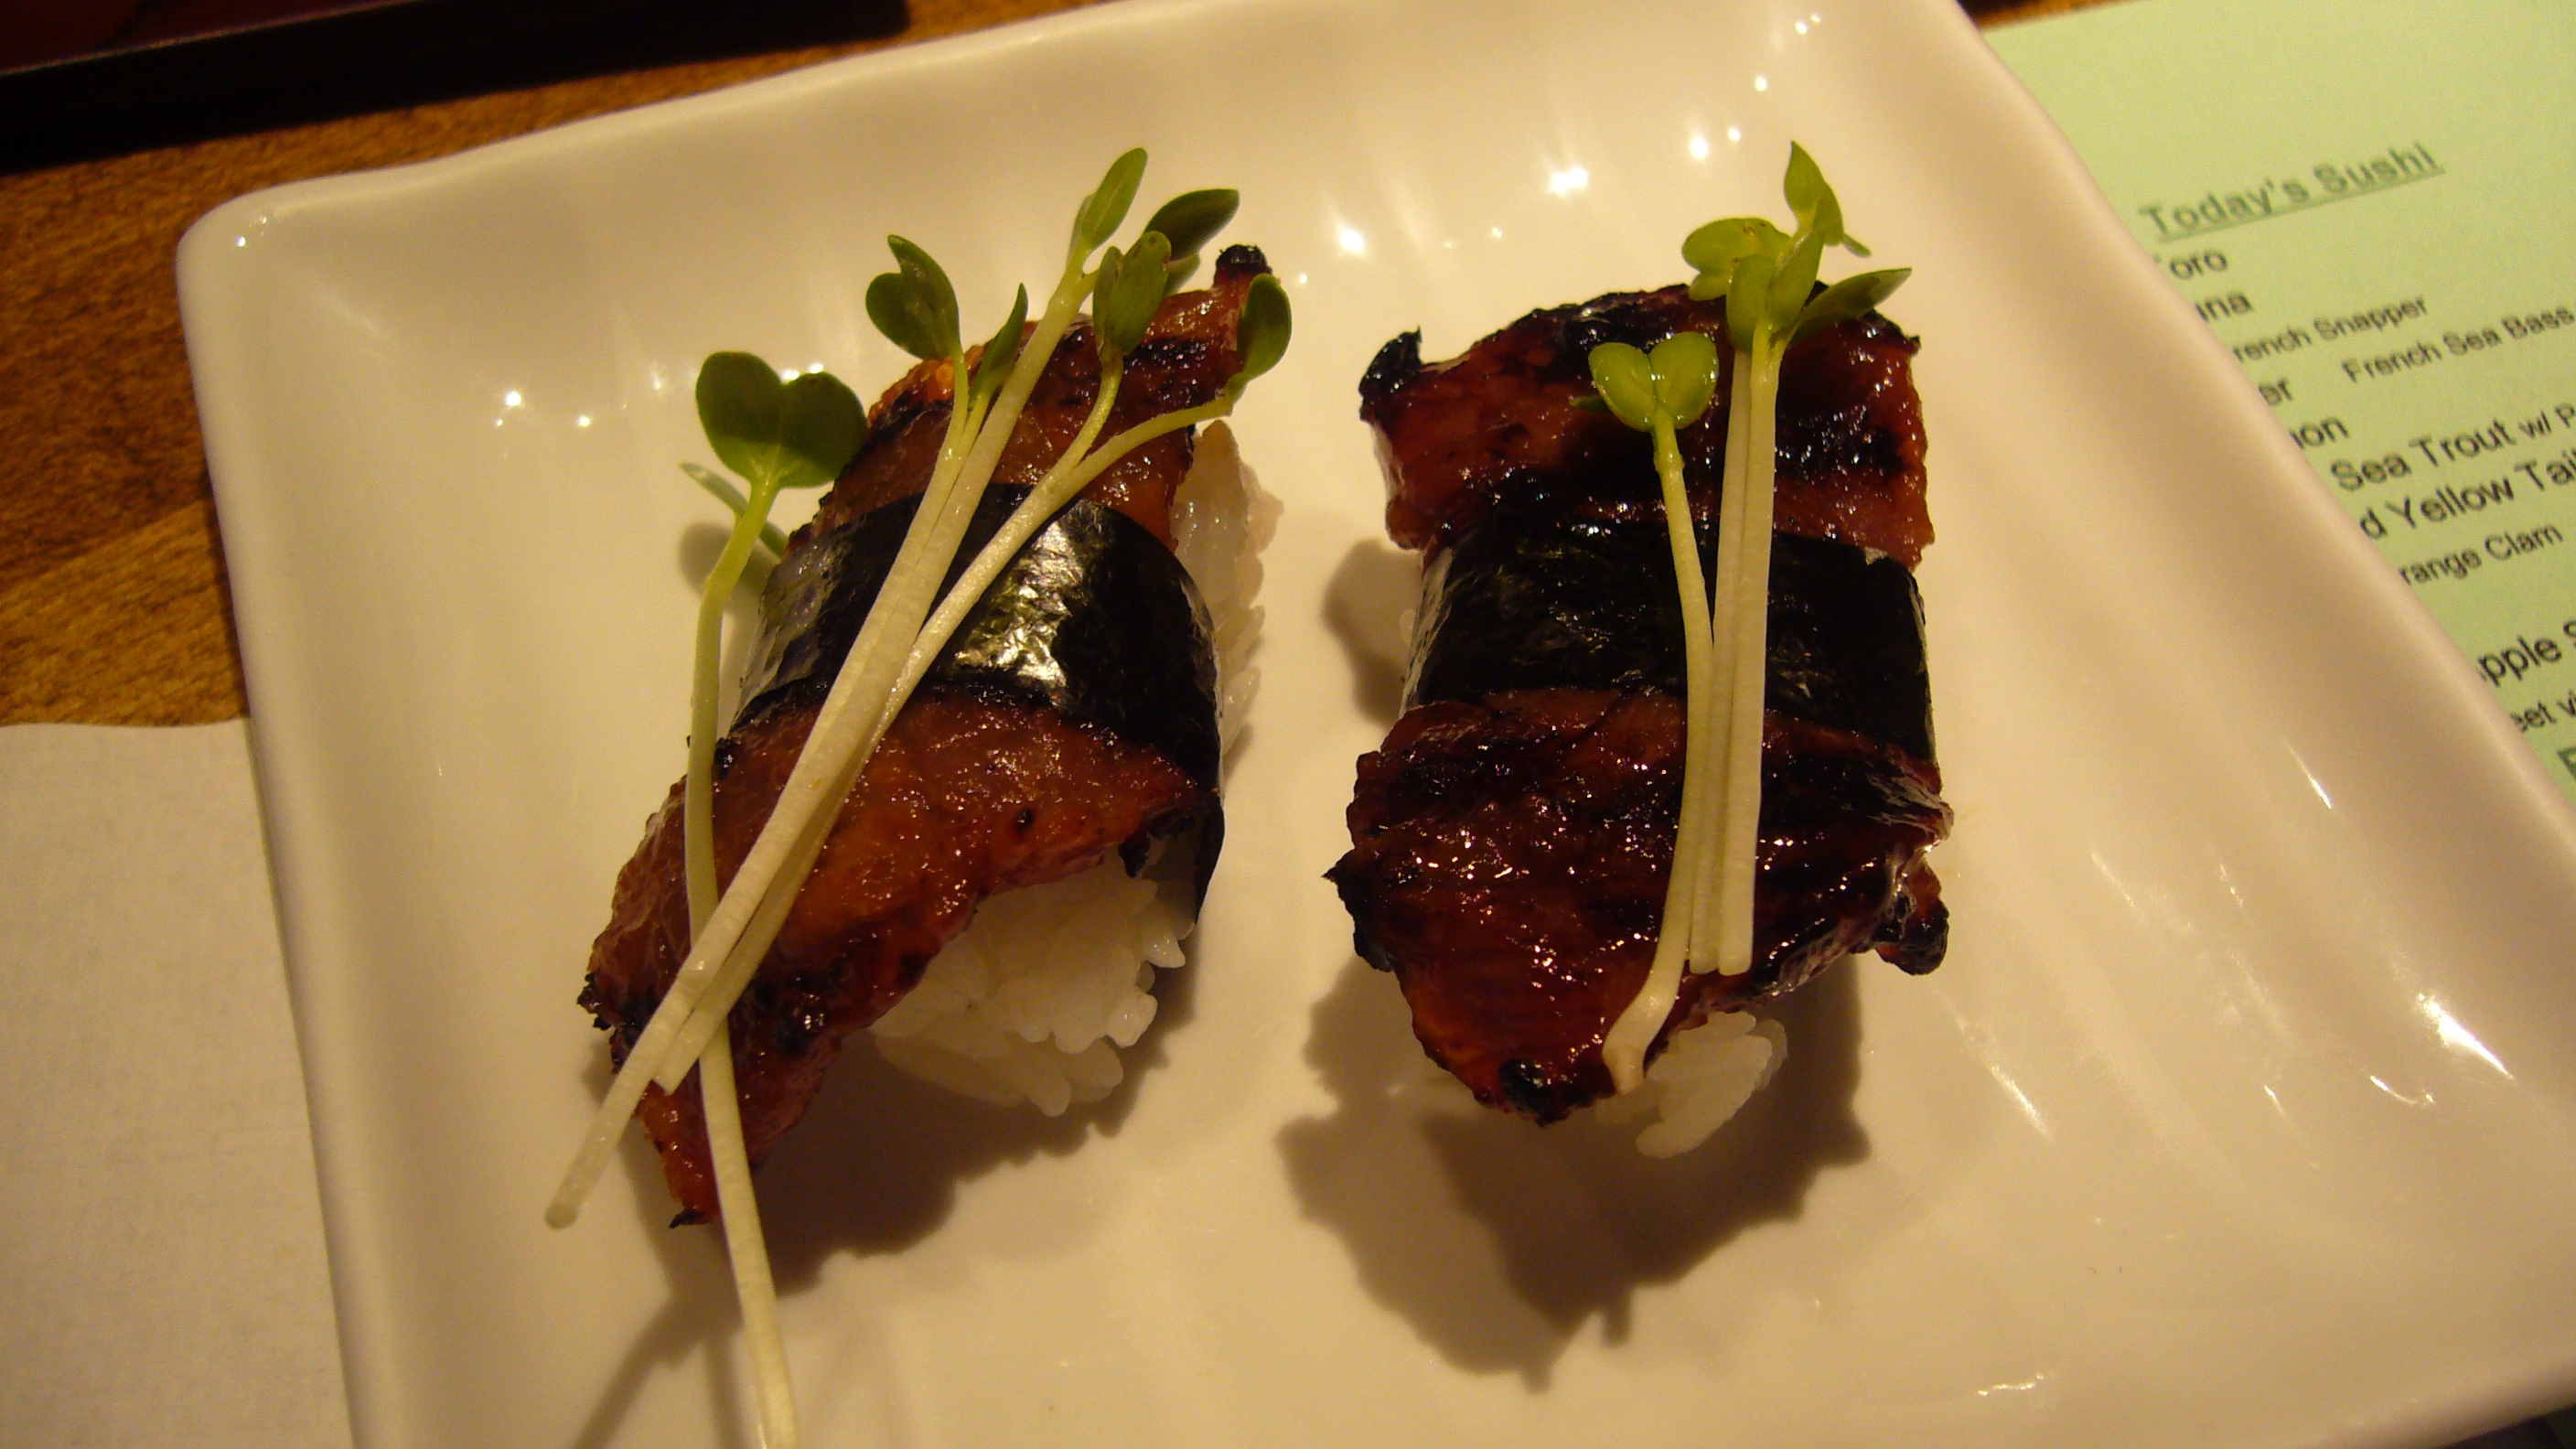 Another highlight, the Wagyu - grilled sake-kasu japanese beef - was perfectly cooked tender, and delicately seasoned sweet and salty